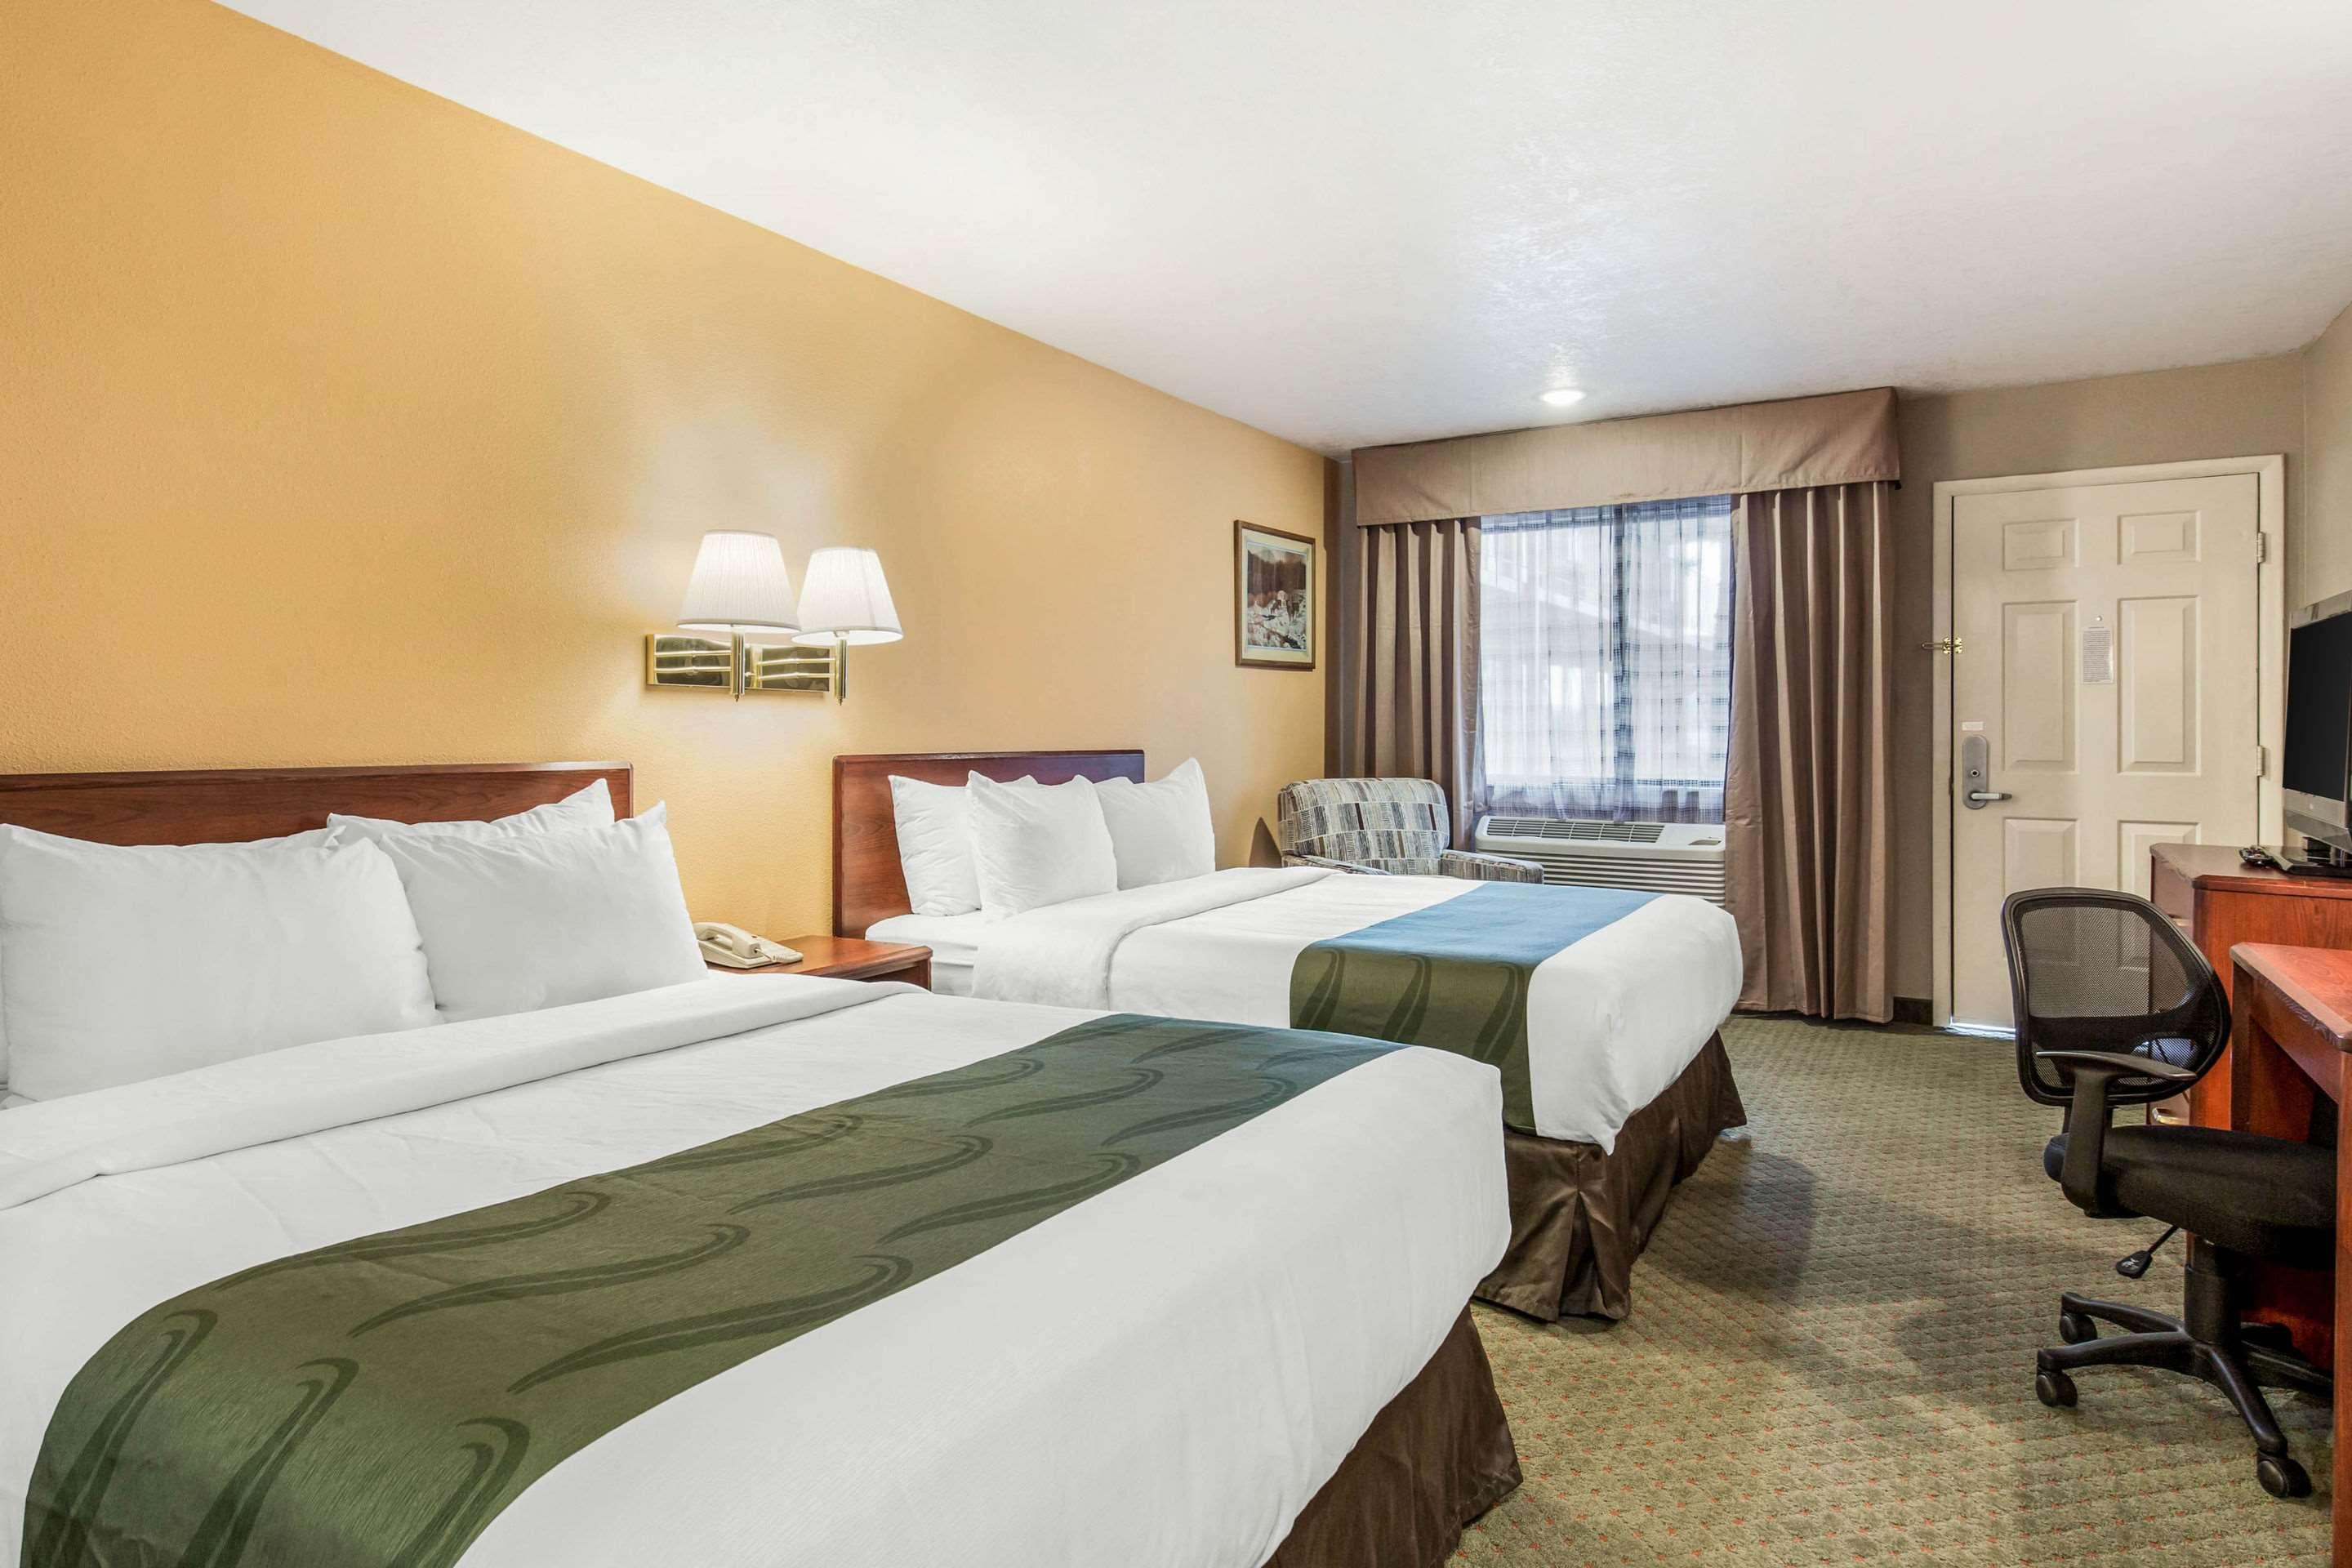 Quality Inn Cedar City - University Area, Iron